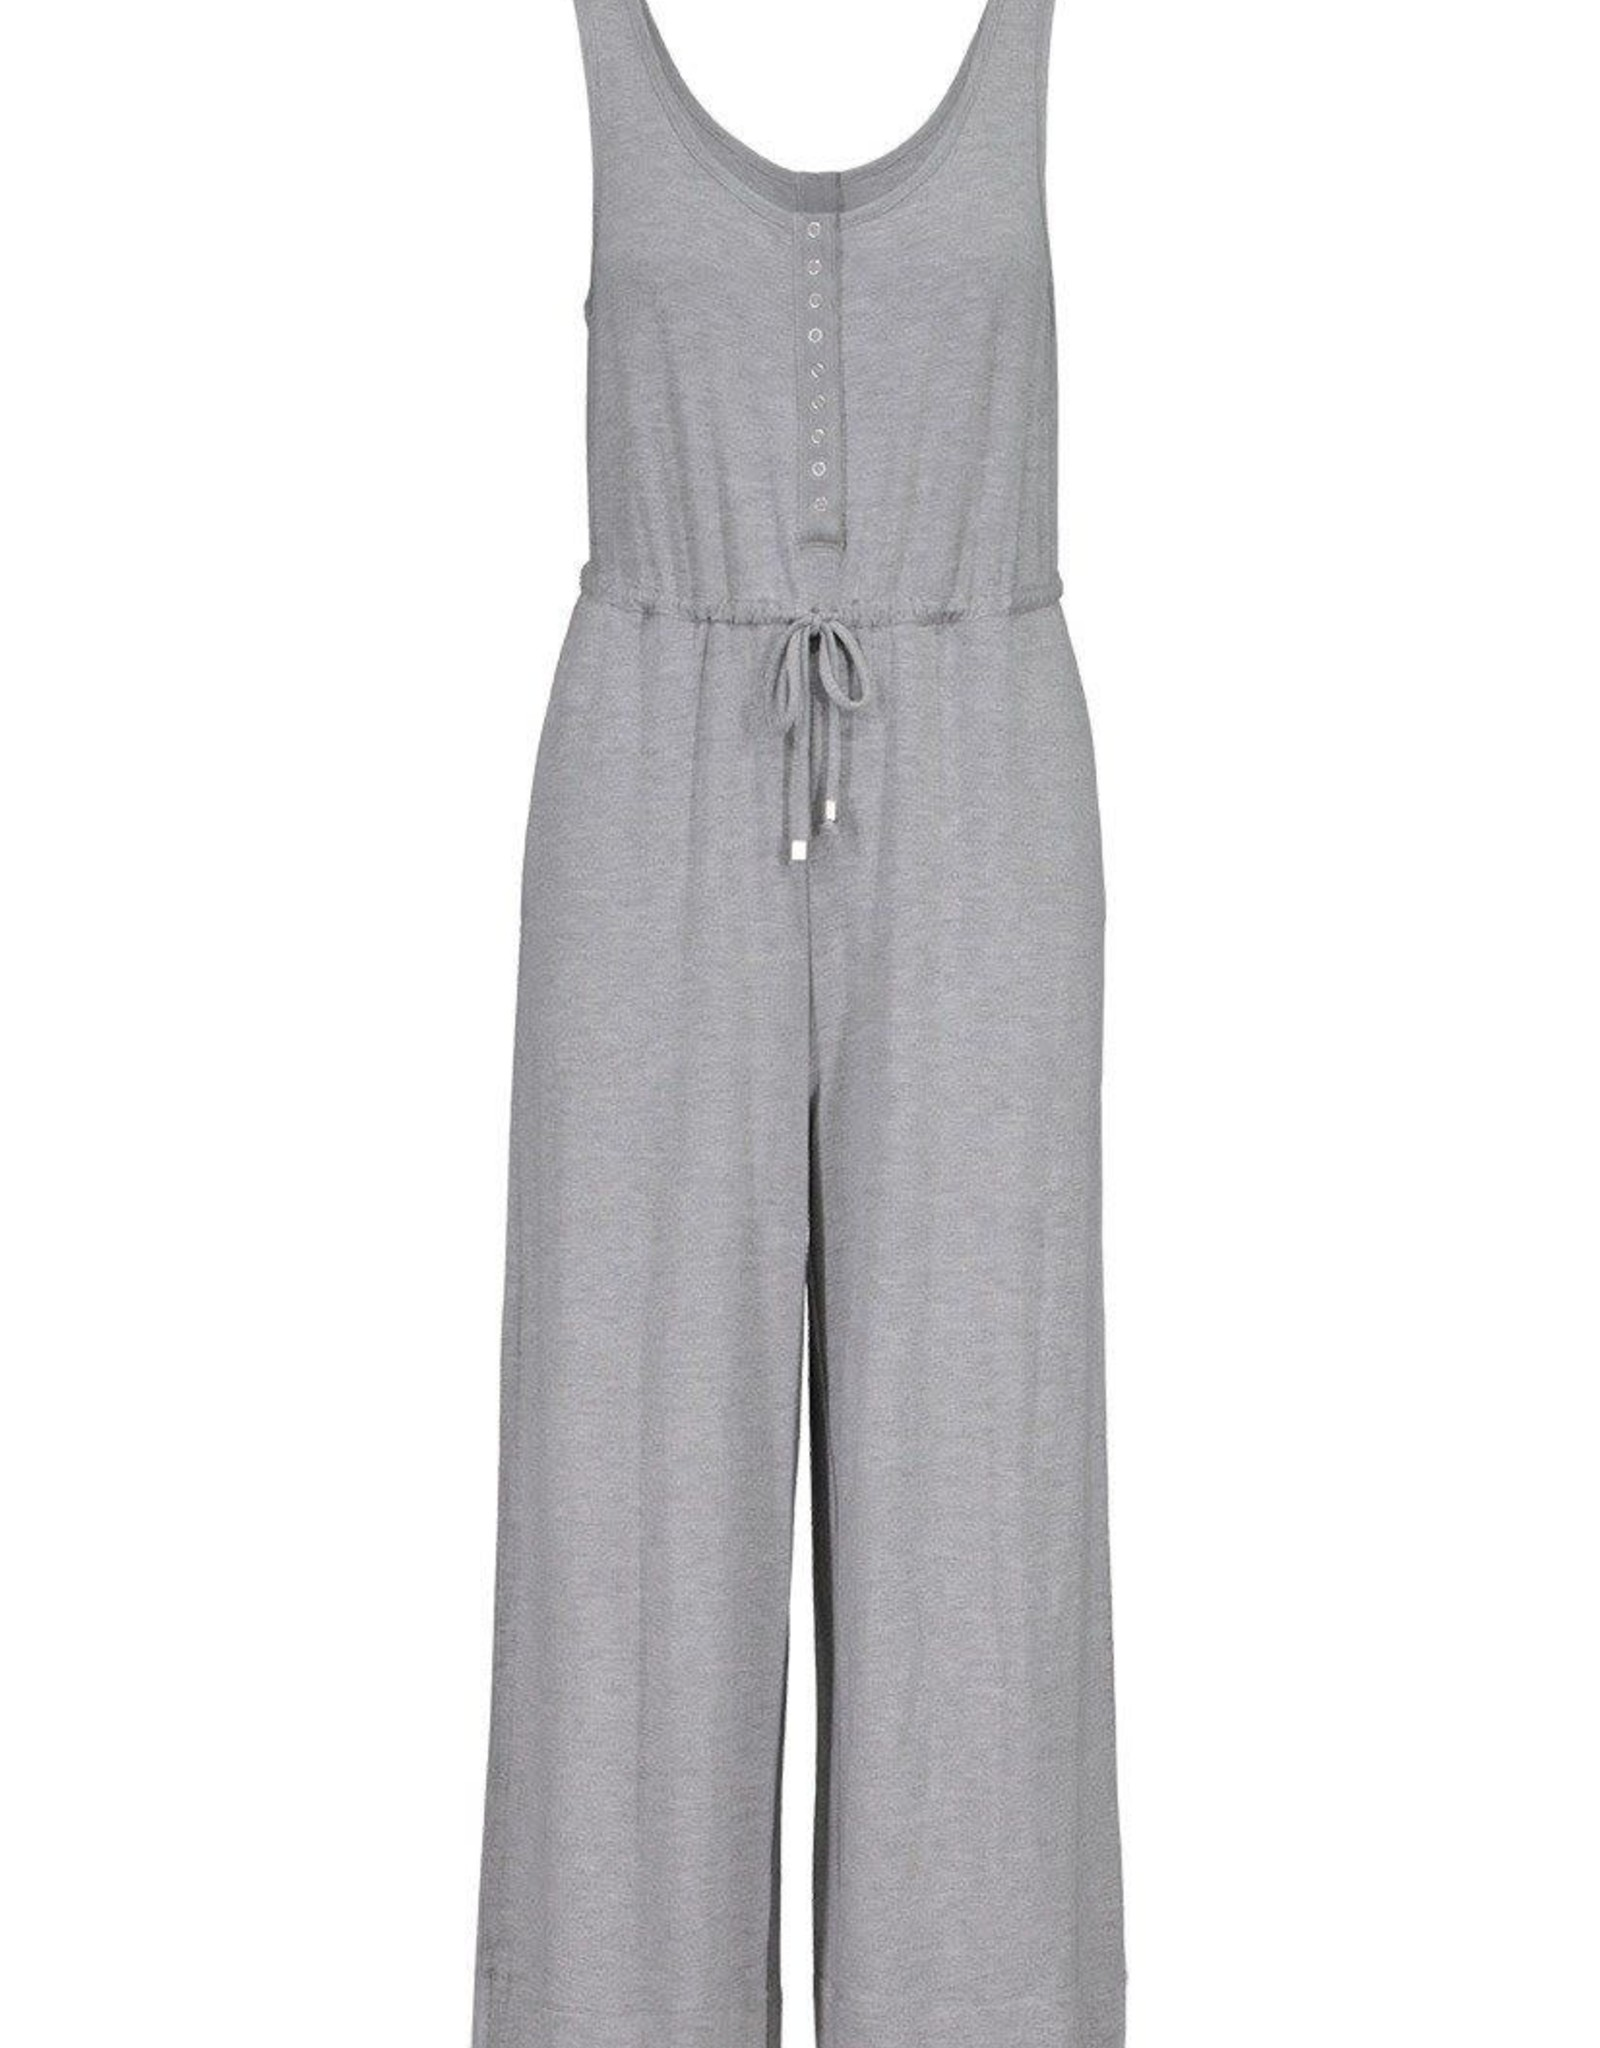 Tribal Grey Jumpsuit w/Snaps